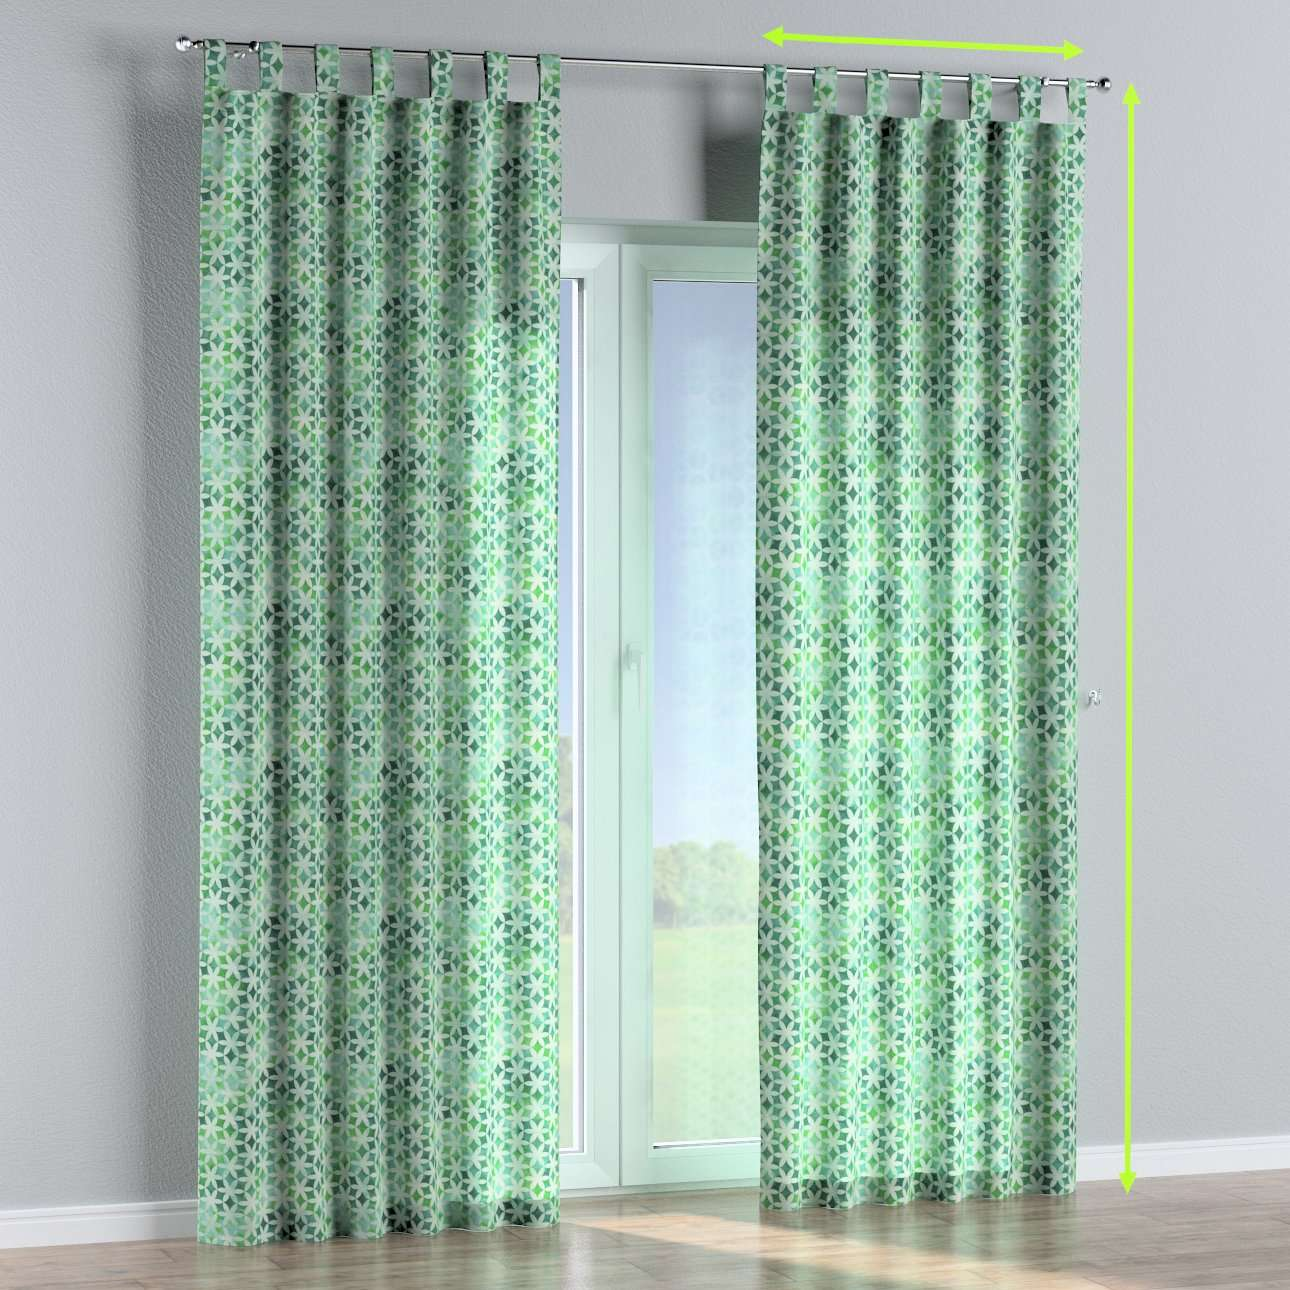 Tab top curtains in collection Urban Jungle, fabric: 141-65